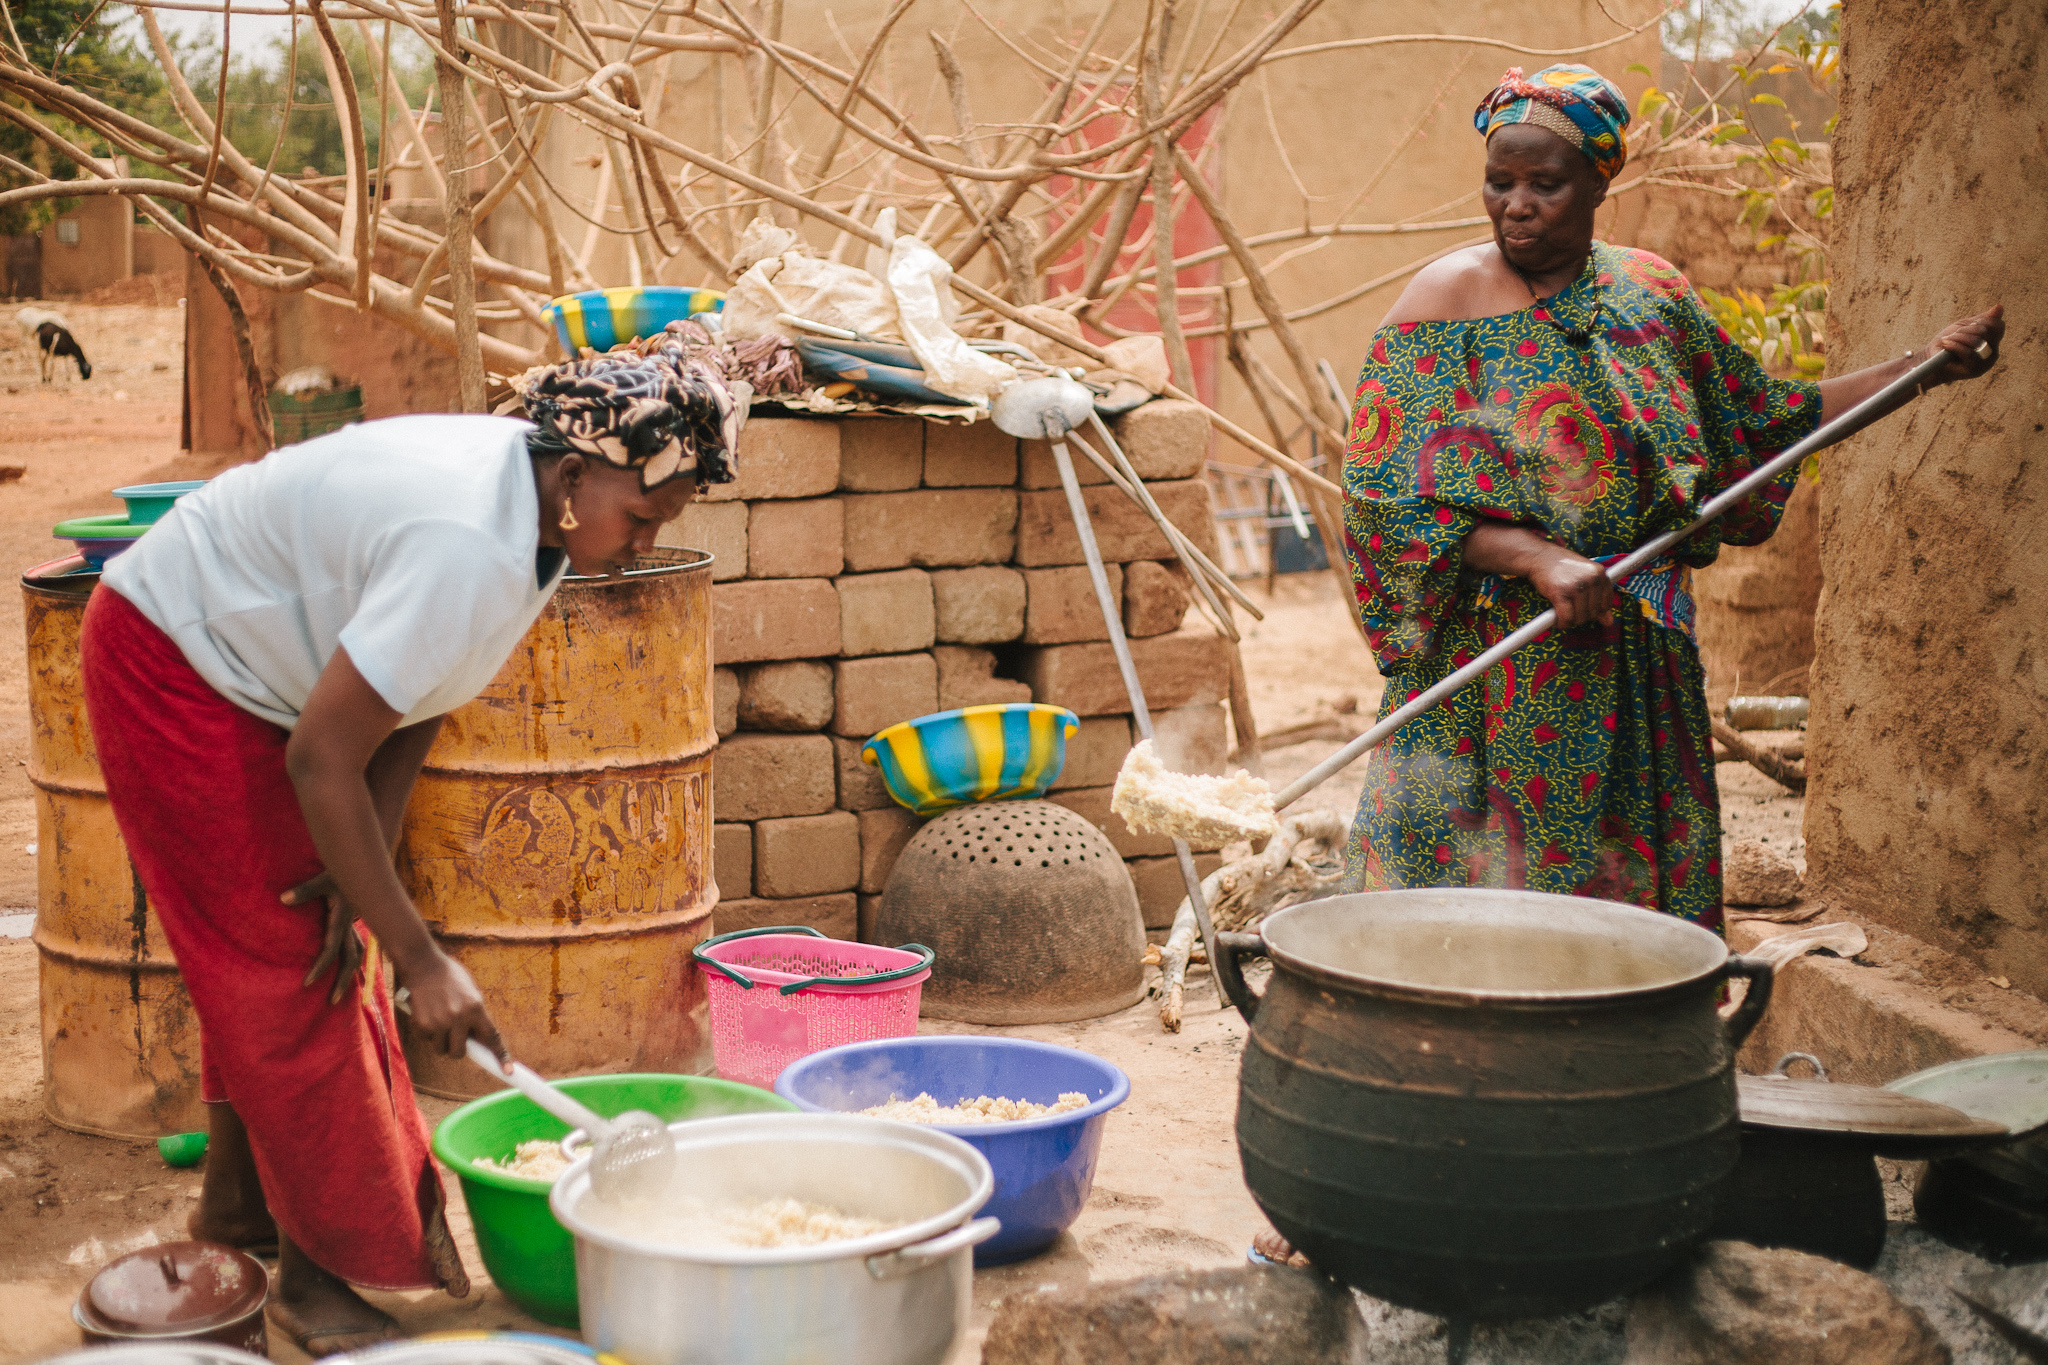 Advance preparation is required to supply Mali Rising volunteers with meals each day.